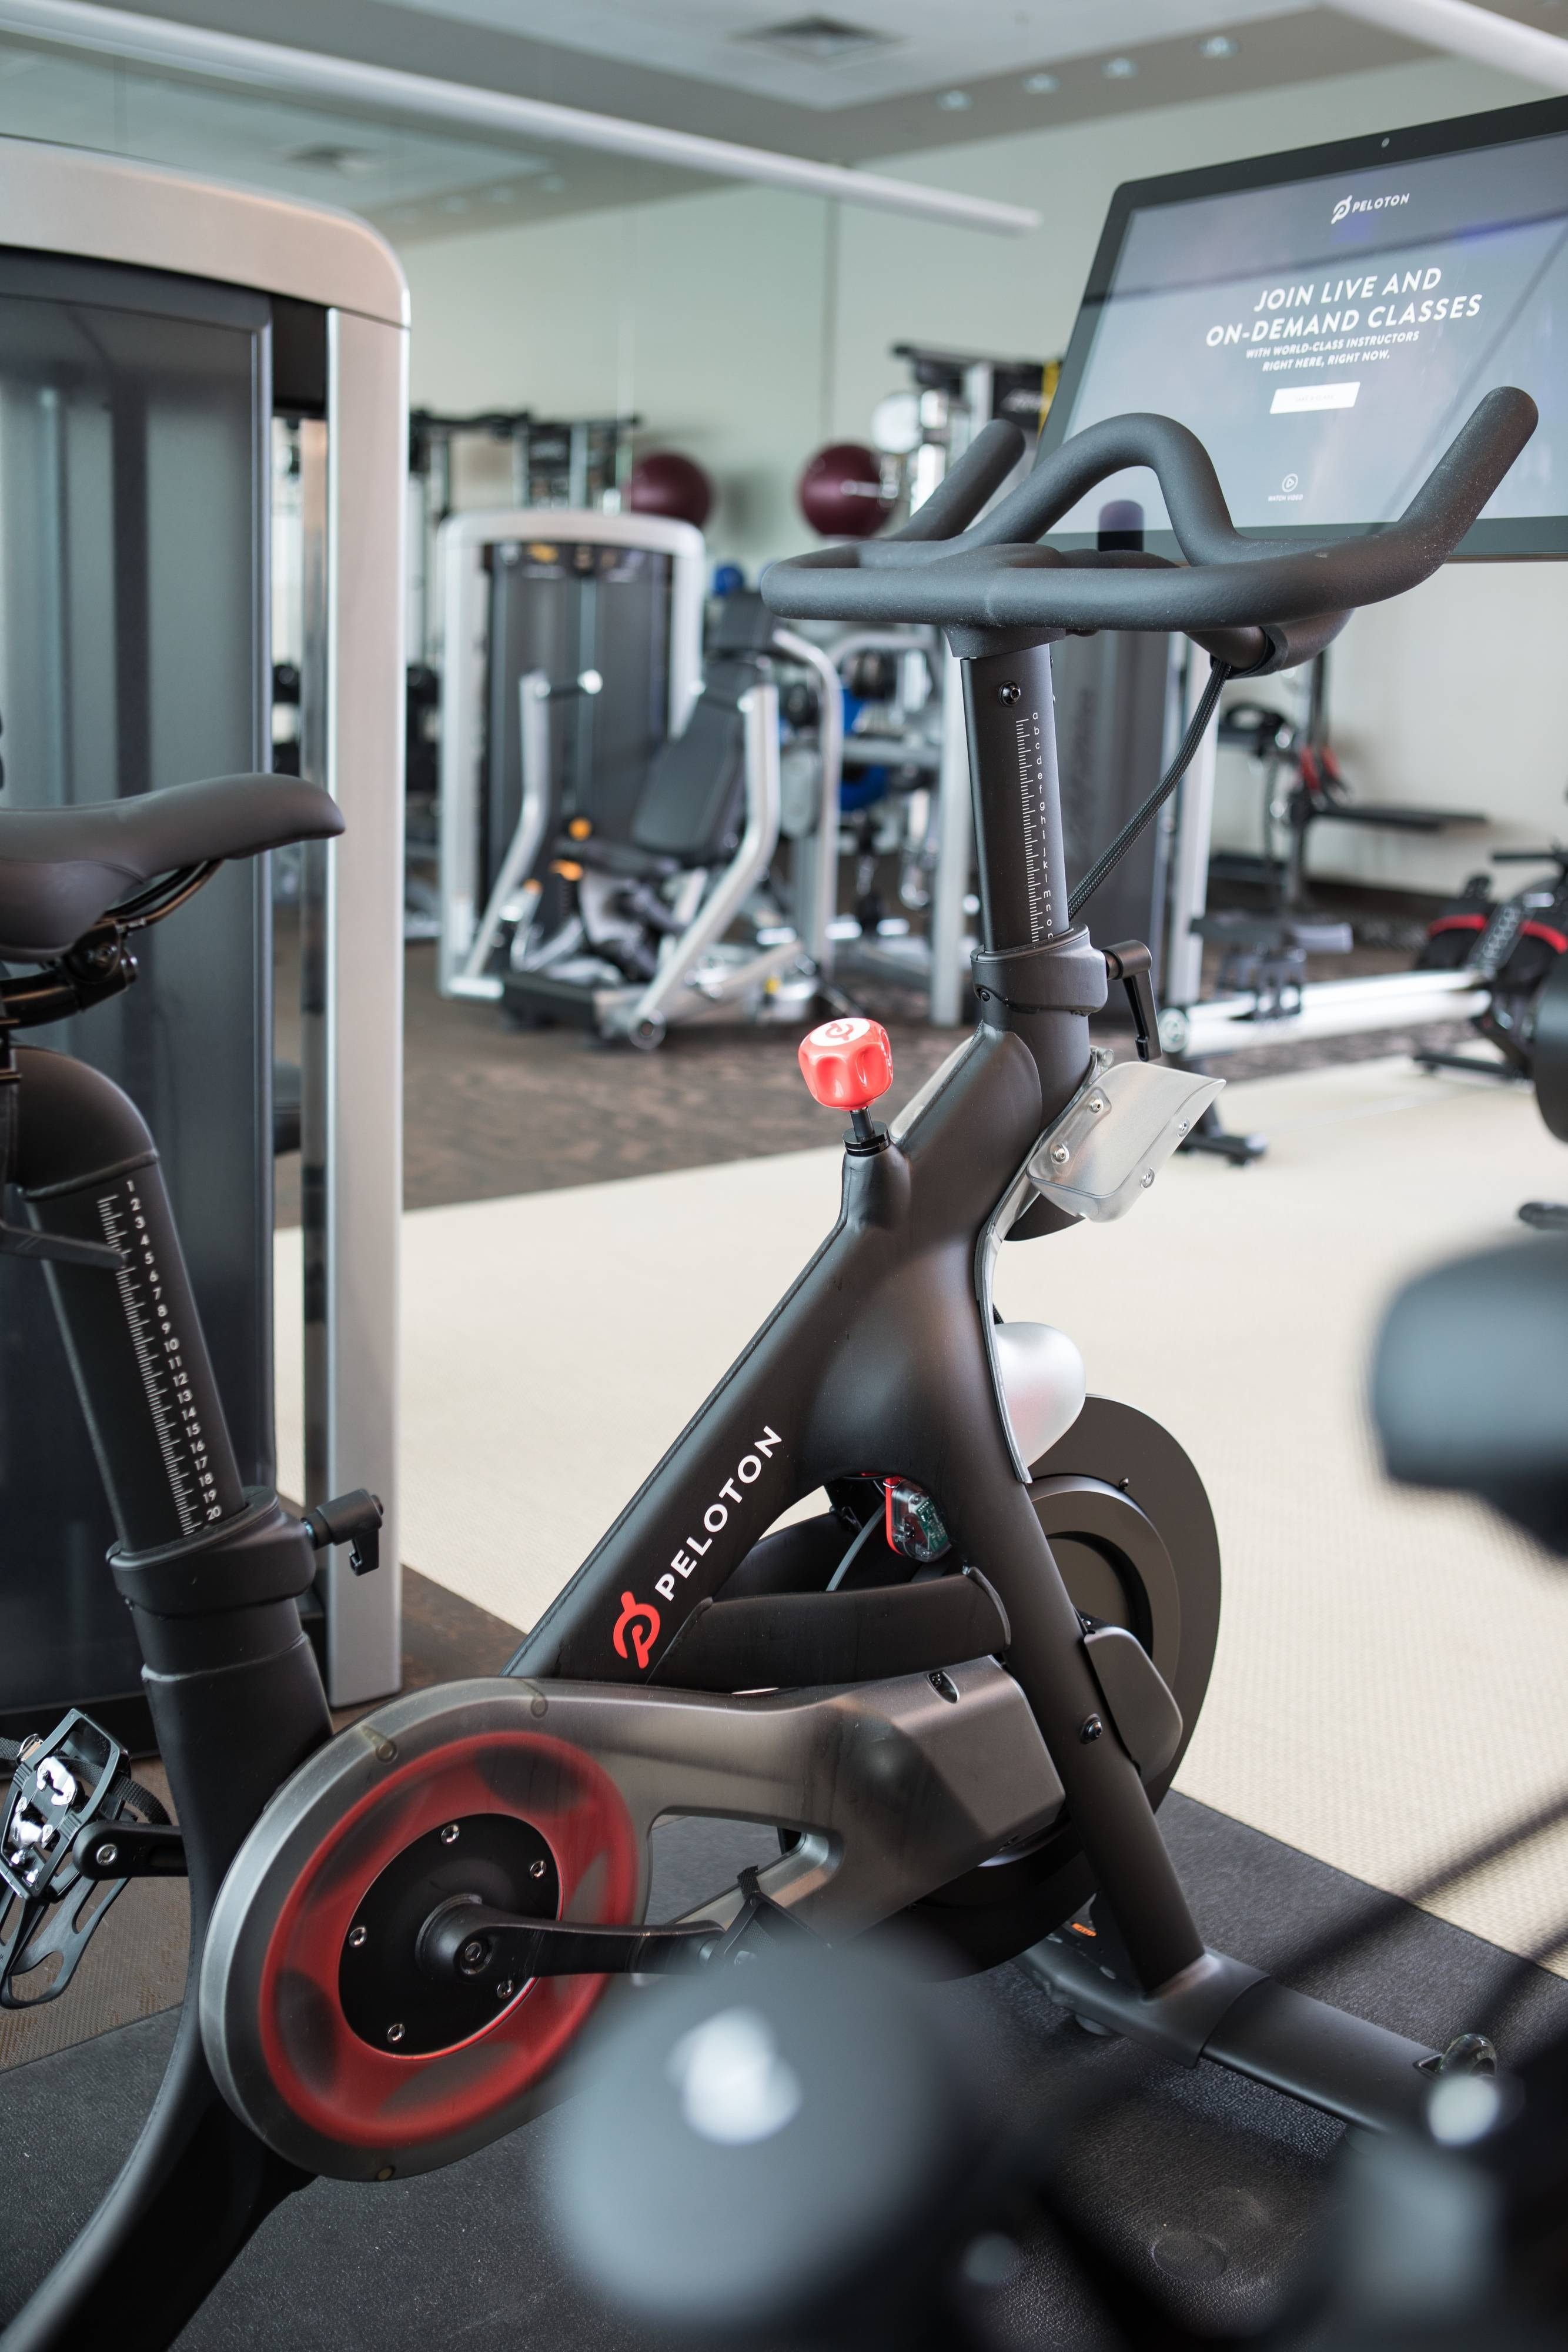 Westin Workout Peloton Bike